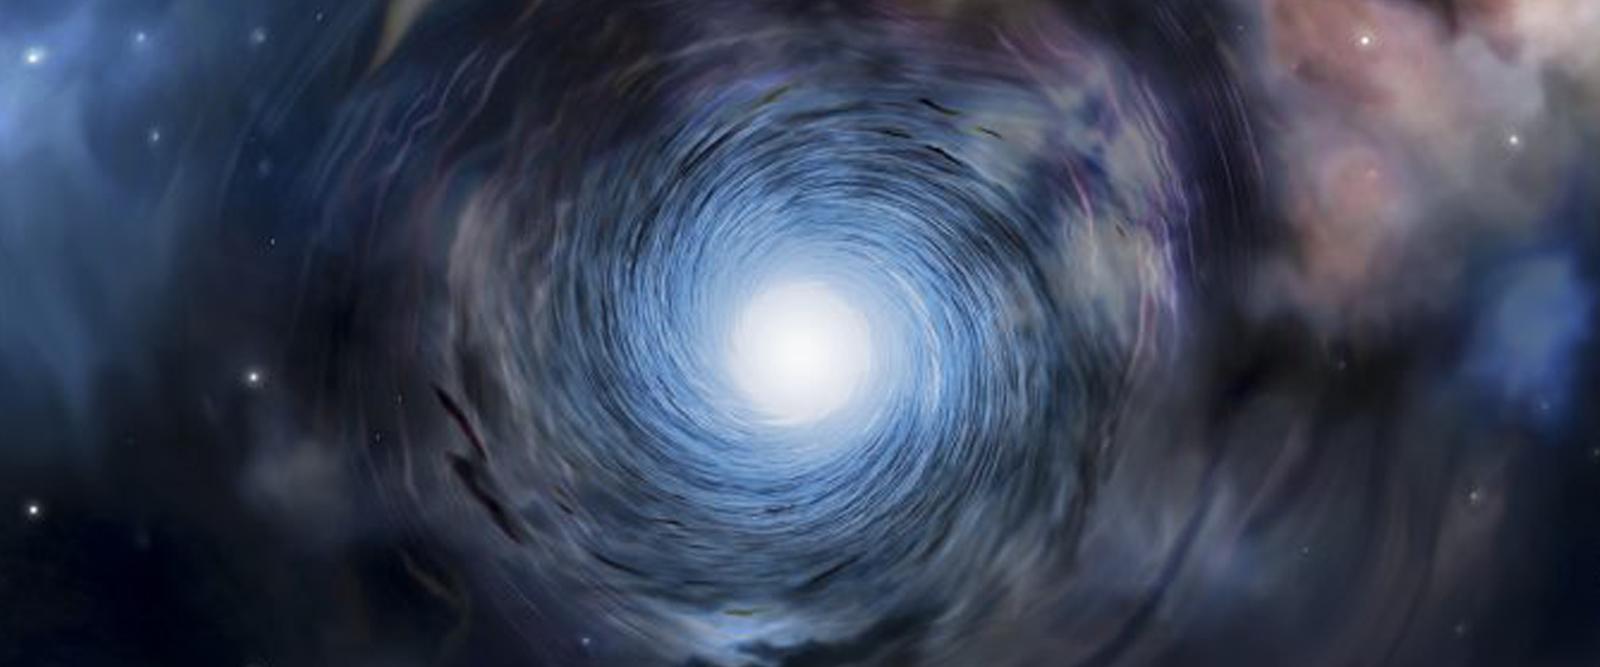 Baby galaxies rotate like mature spirals